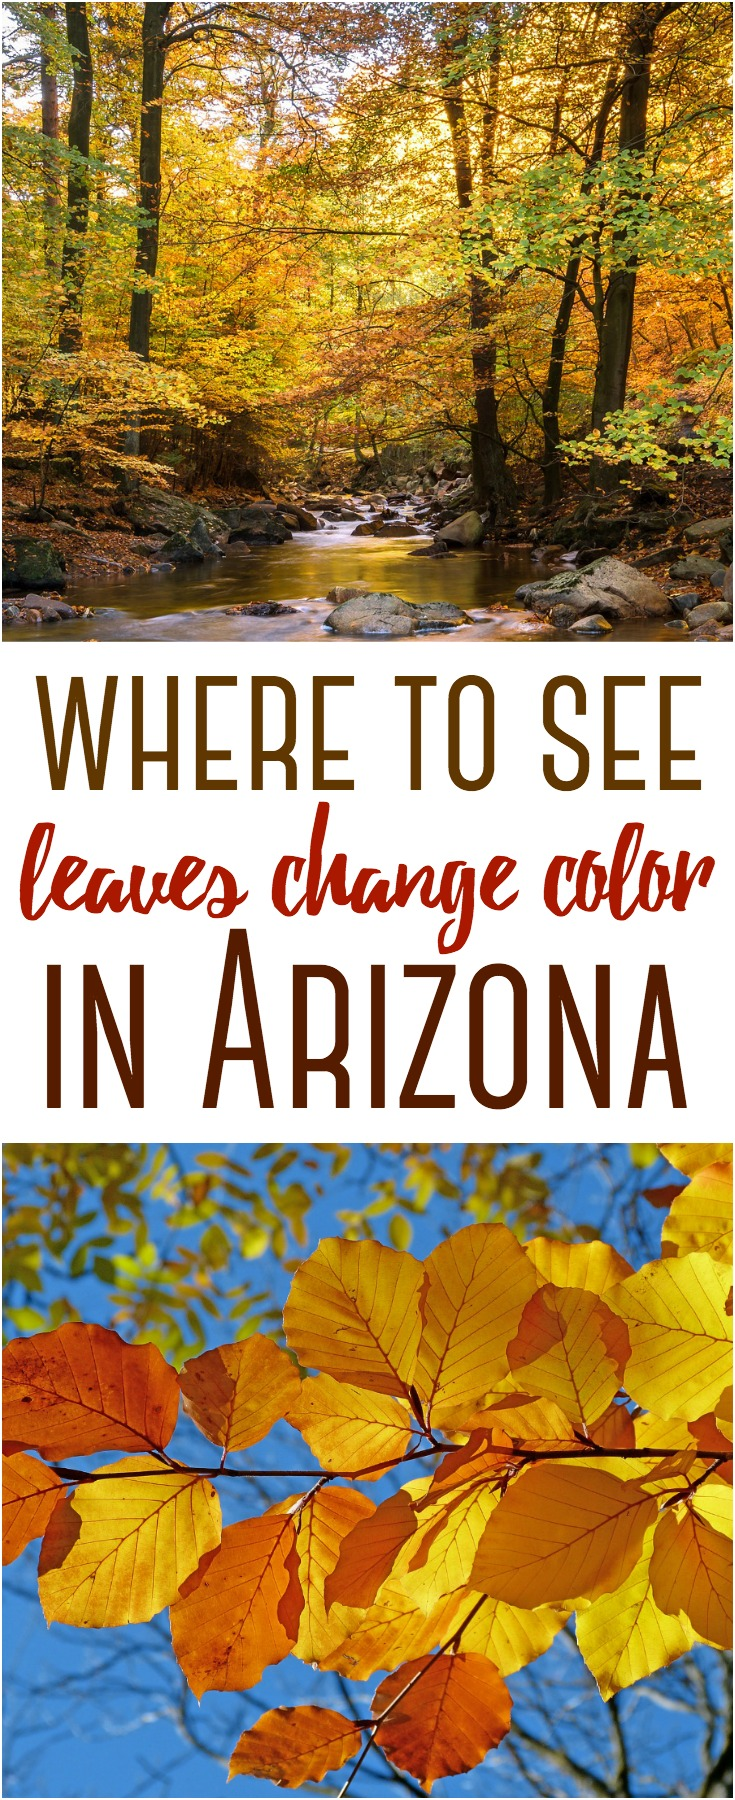 Your guide to see fall leaves change color in Arizona. Here are several easy day trips to that provide many opportunities to see the leaves change colors.